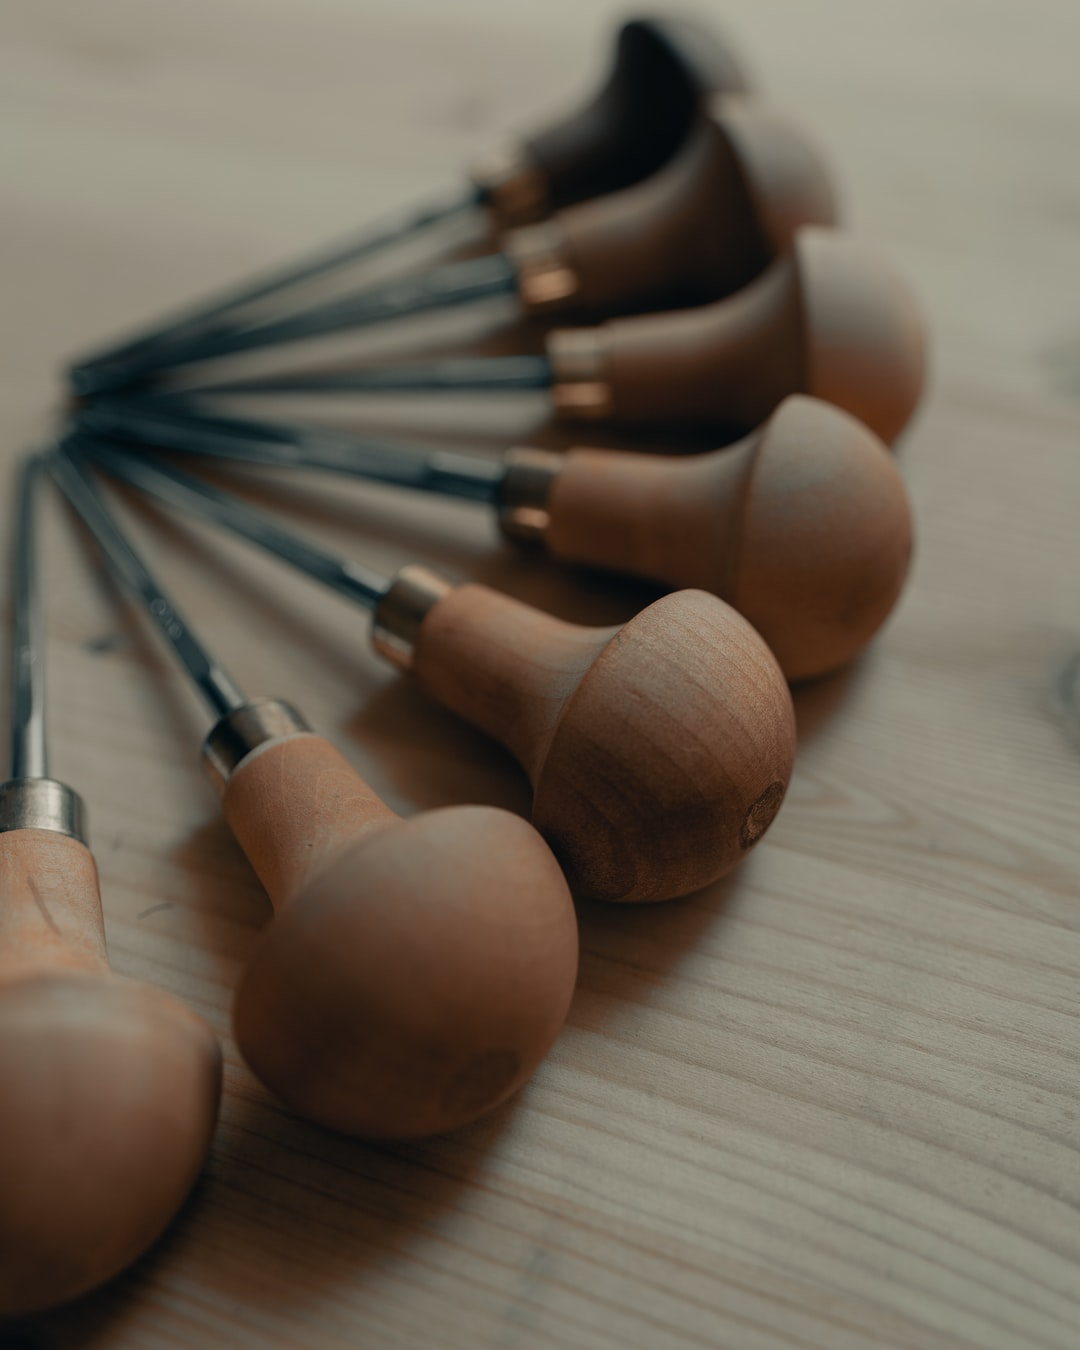 Swiss woodcarving tools 2/3 (IG: @clay.banks)